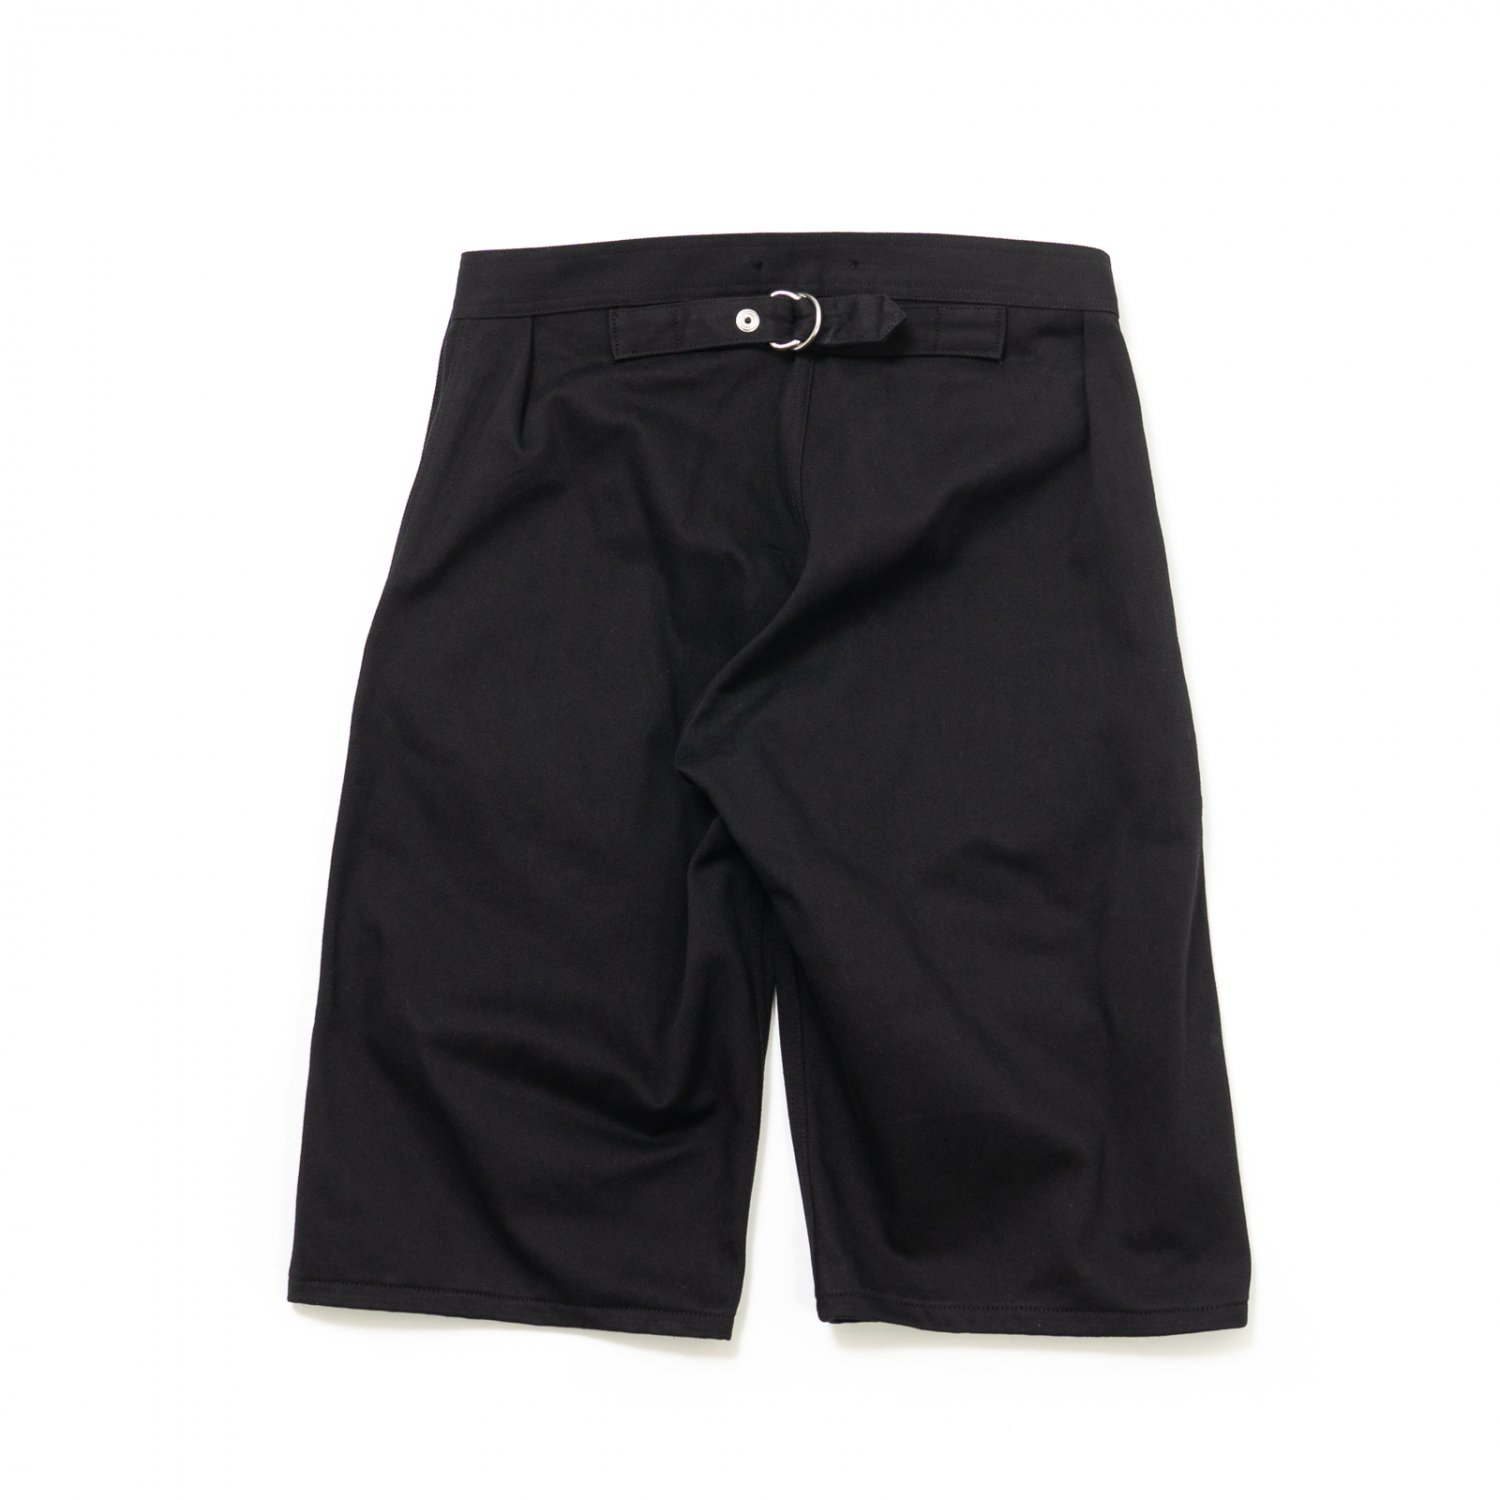 TUKI * 0147 Snap Shorts * Black